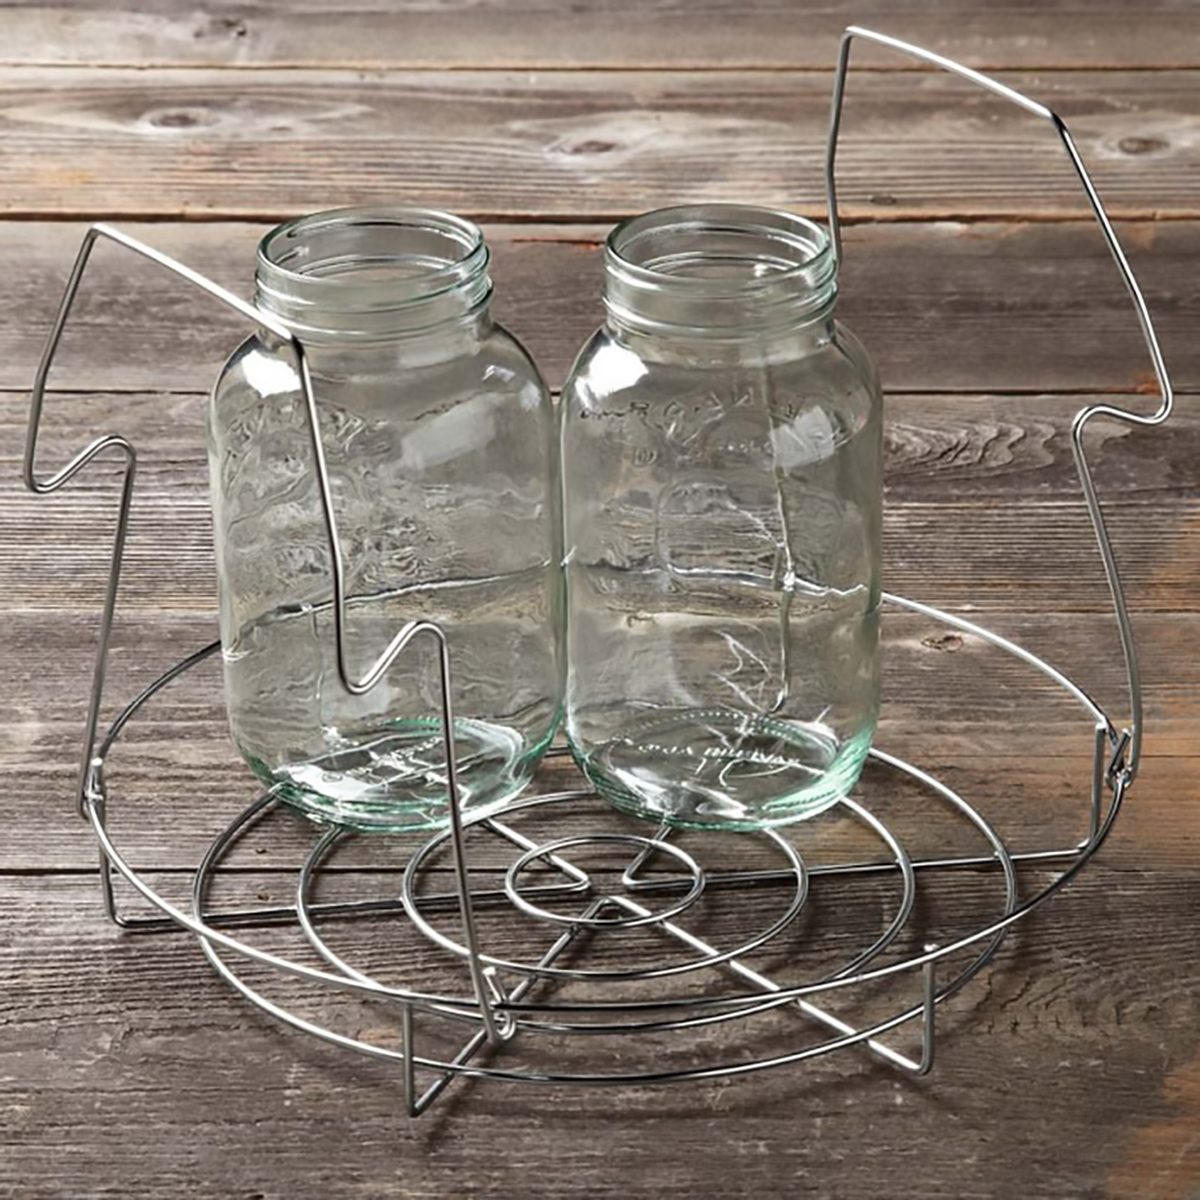 Stainless Steel Canning Insert Rack